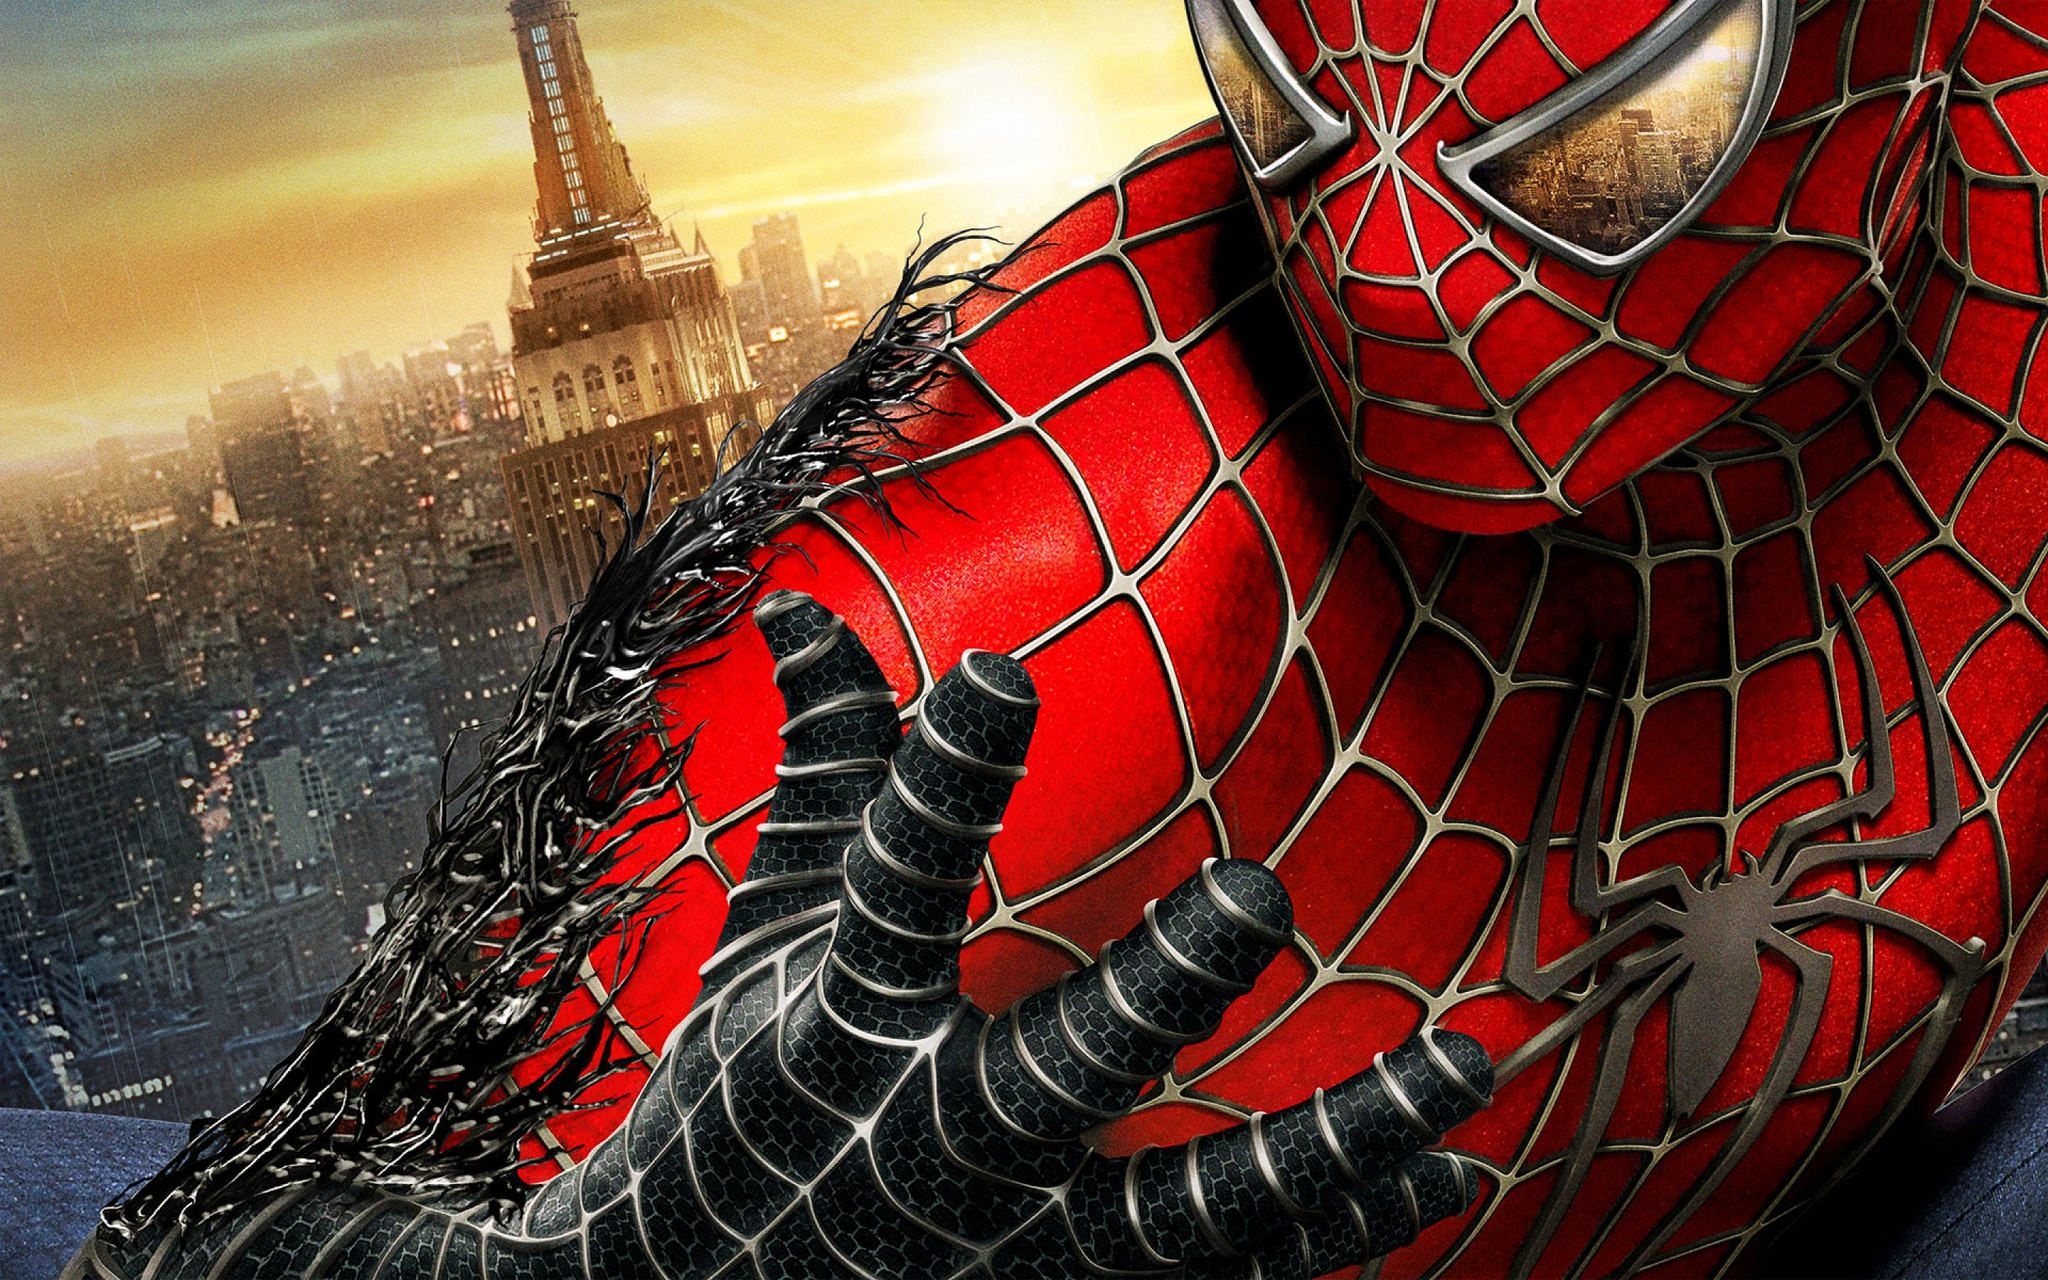 mobilethemeses2Kwallpaper Spiderman pictures